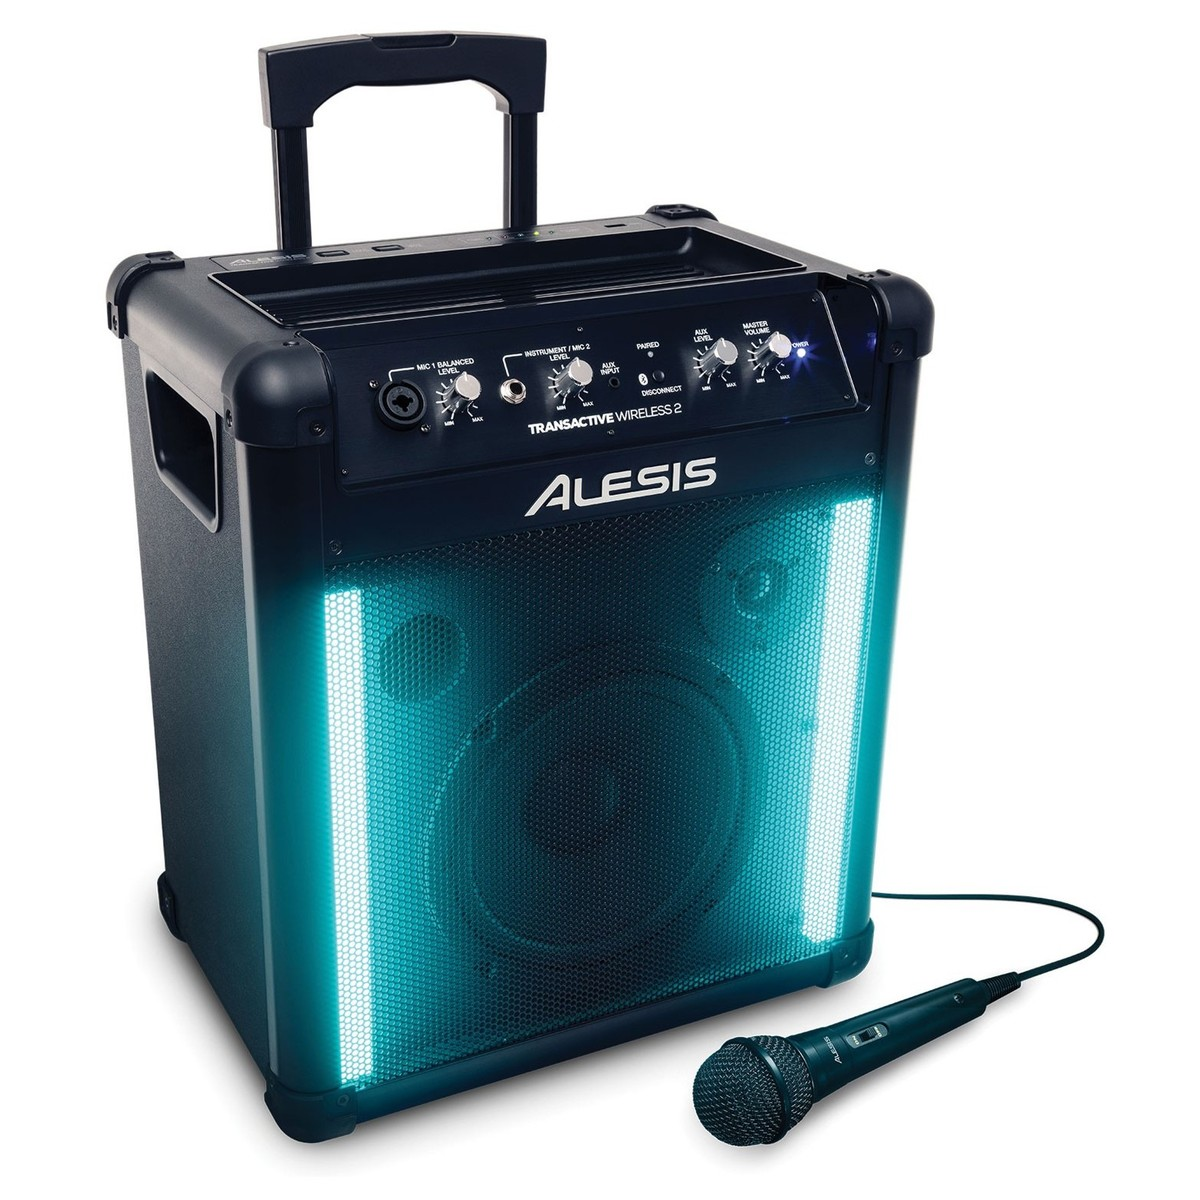 alesis transactive wireless 2 portable pa system box opened at gear4music. Black Bedroom Furniture Sets. Home Design Ideas